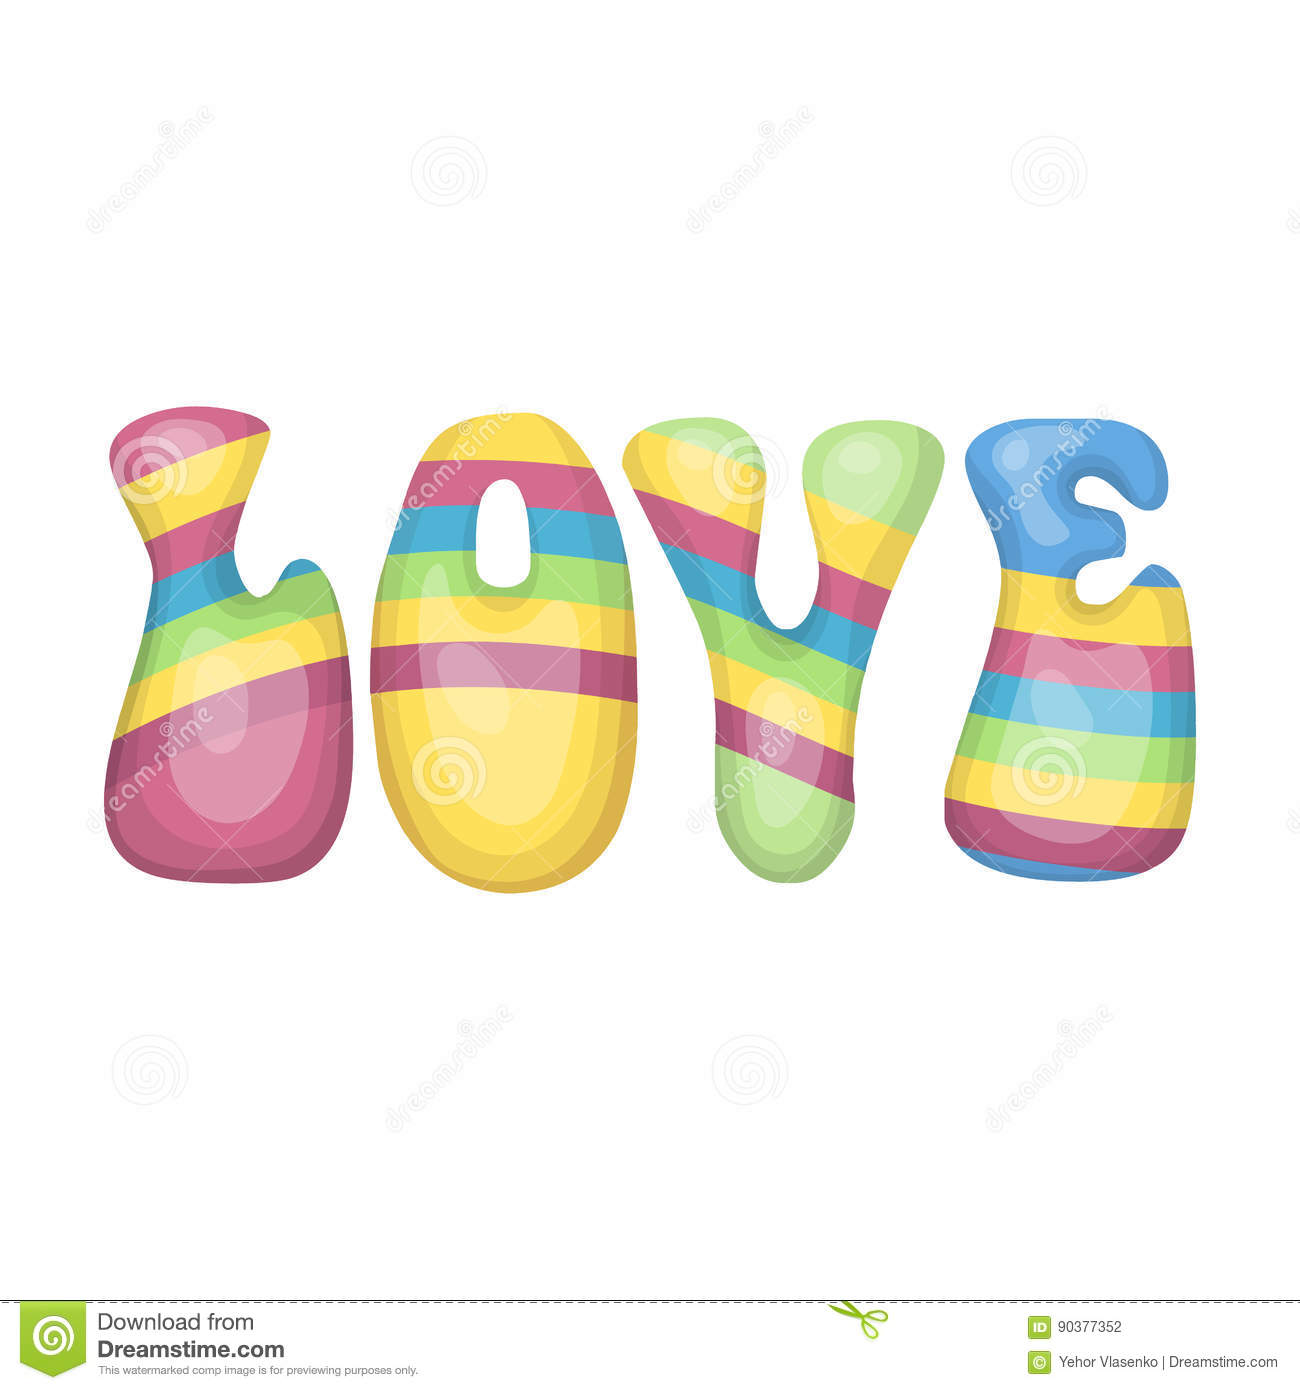 Royalty Free Vector Download Rainbow Inscription Of The Word Love Hippy Single